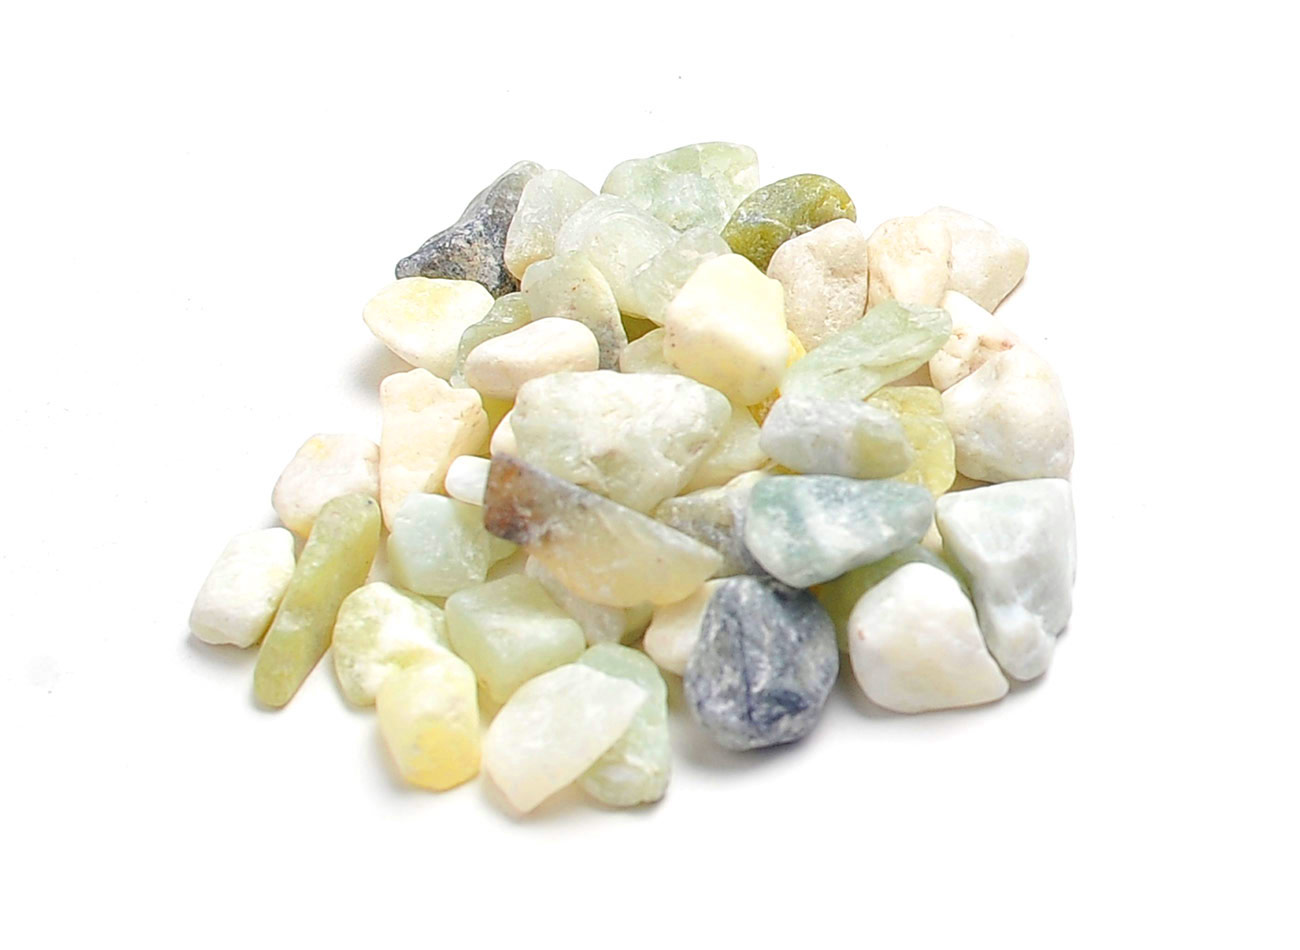 GREEN JADE GRAVEL